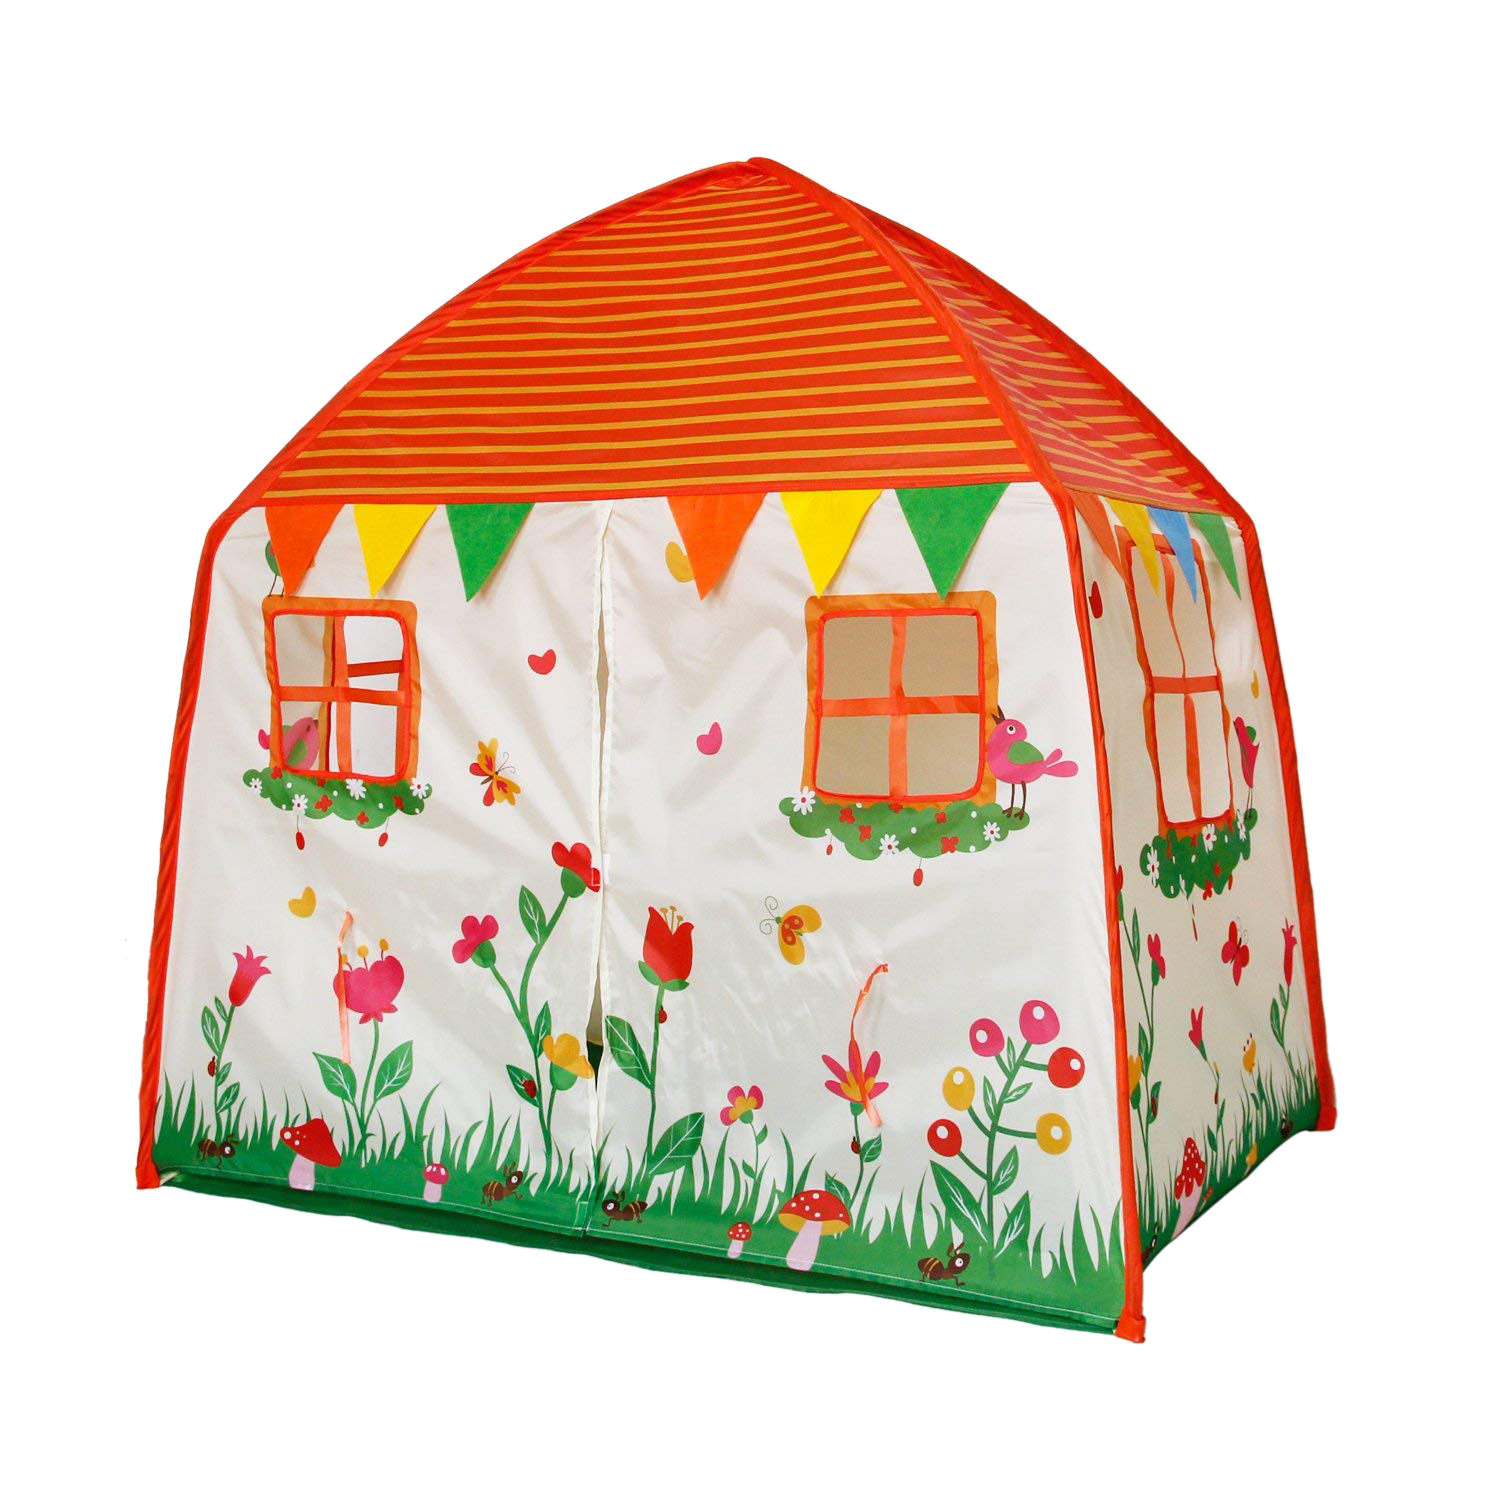 Childrens Tent for Outdoor and Indoor Play Foldable Tent for Girls and Boys with Soft Carpet Apricot Baby Play Tent House Childrens Tent for Outdoor and Indoor Play Foldable Tent for Girls and Boys with Soft Carpet Apricot Baby Play Tent House